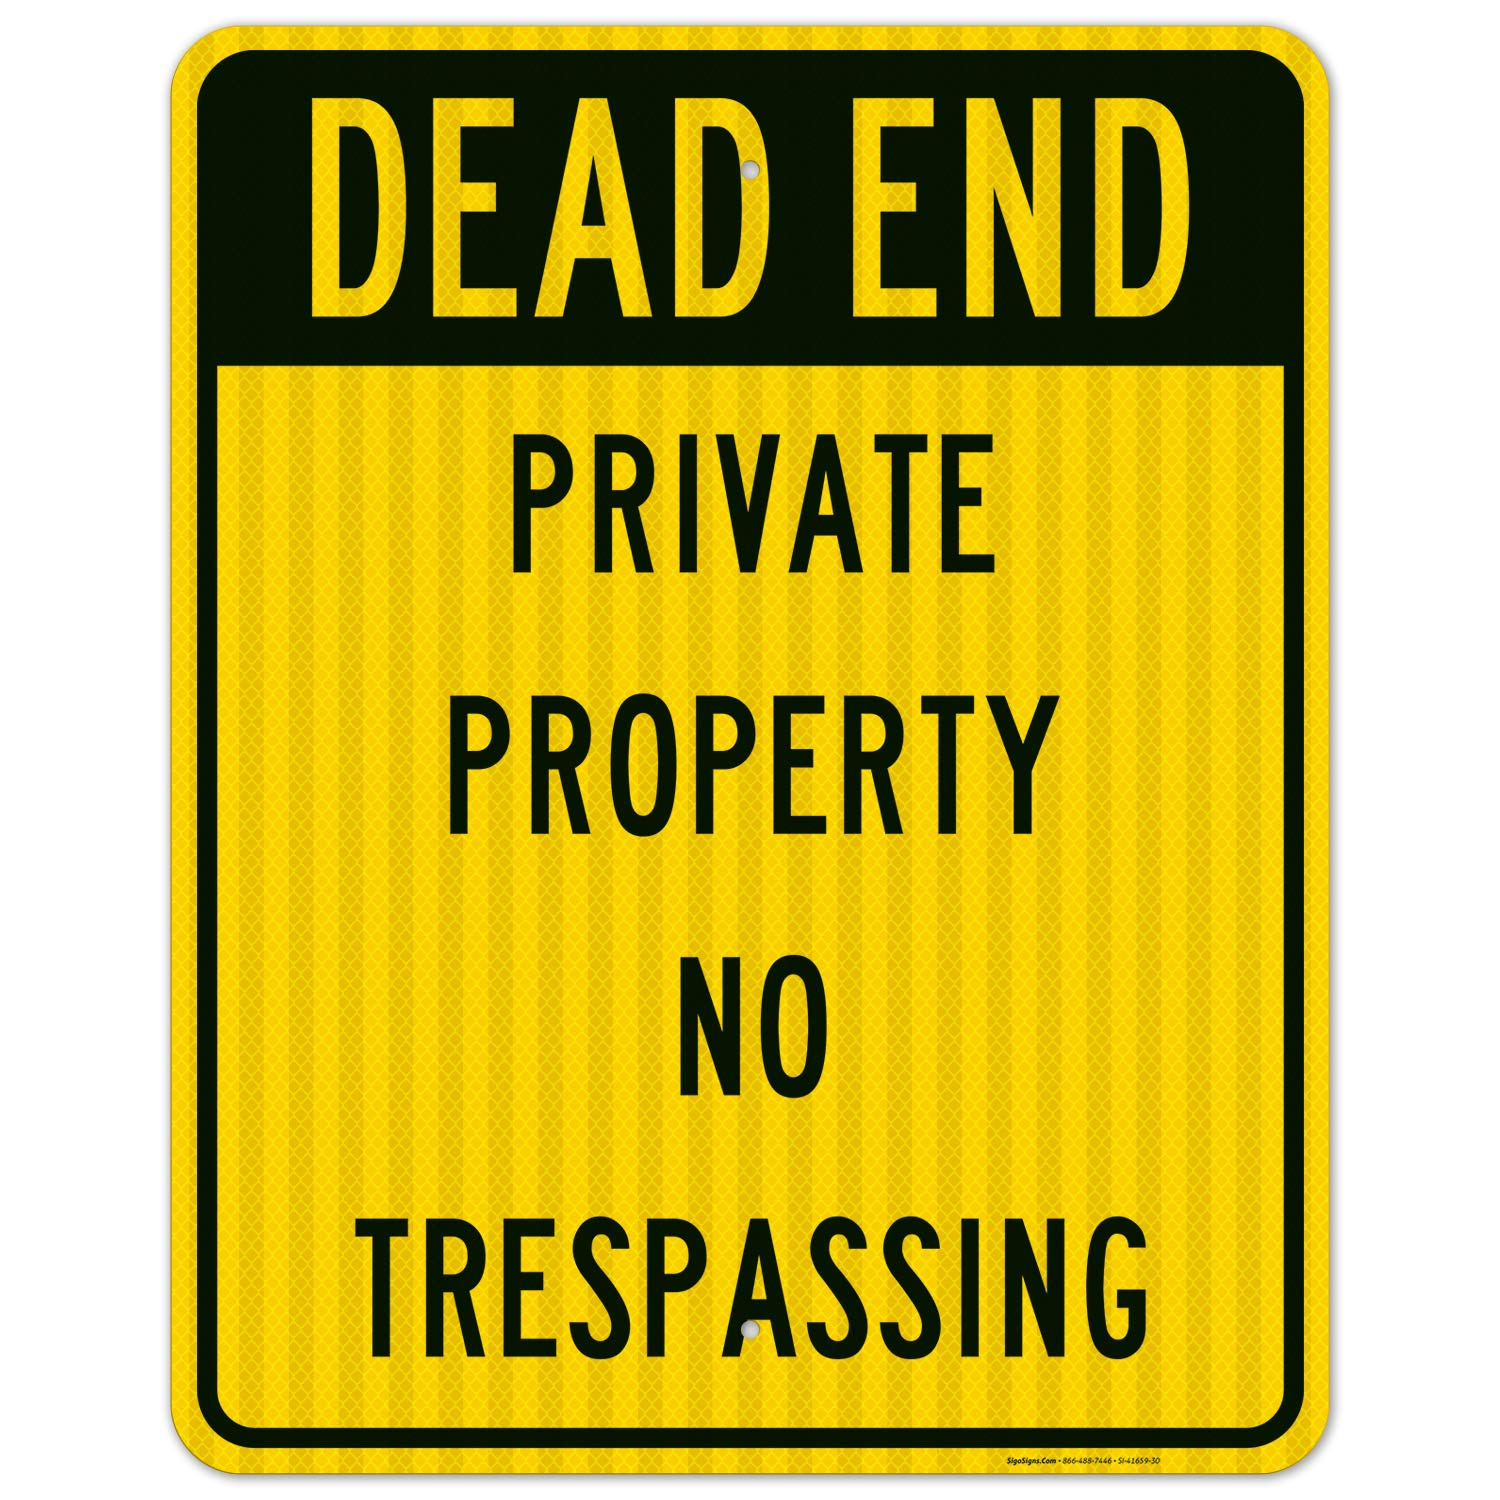 Dead End Private Property No Sign 3M Trespassing 24x30 Inches Outlet sale Special price feature